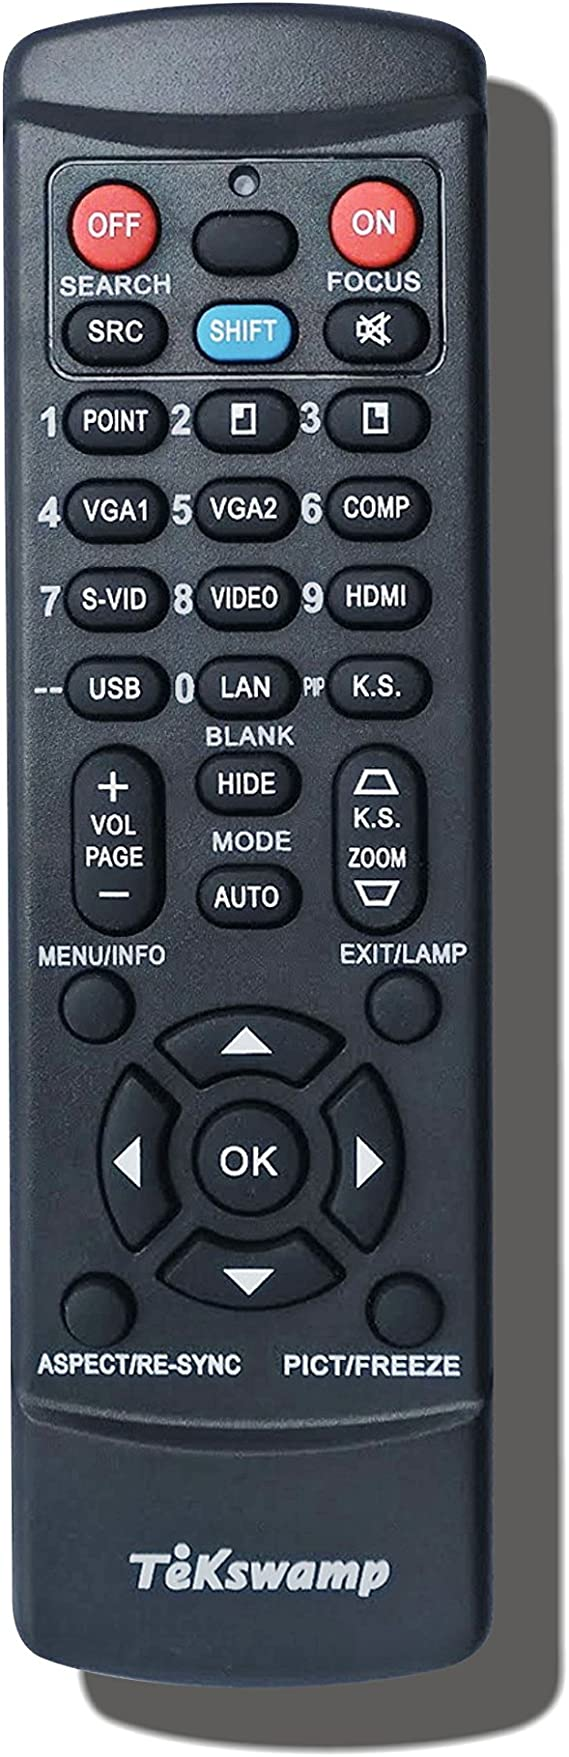 for Casio XJ-S42 TeKswamp Video Projector Remote Control Black